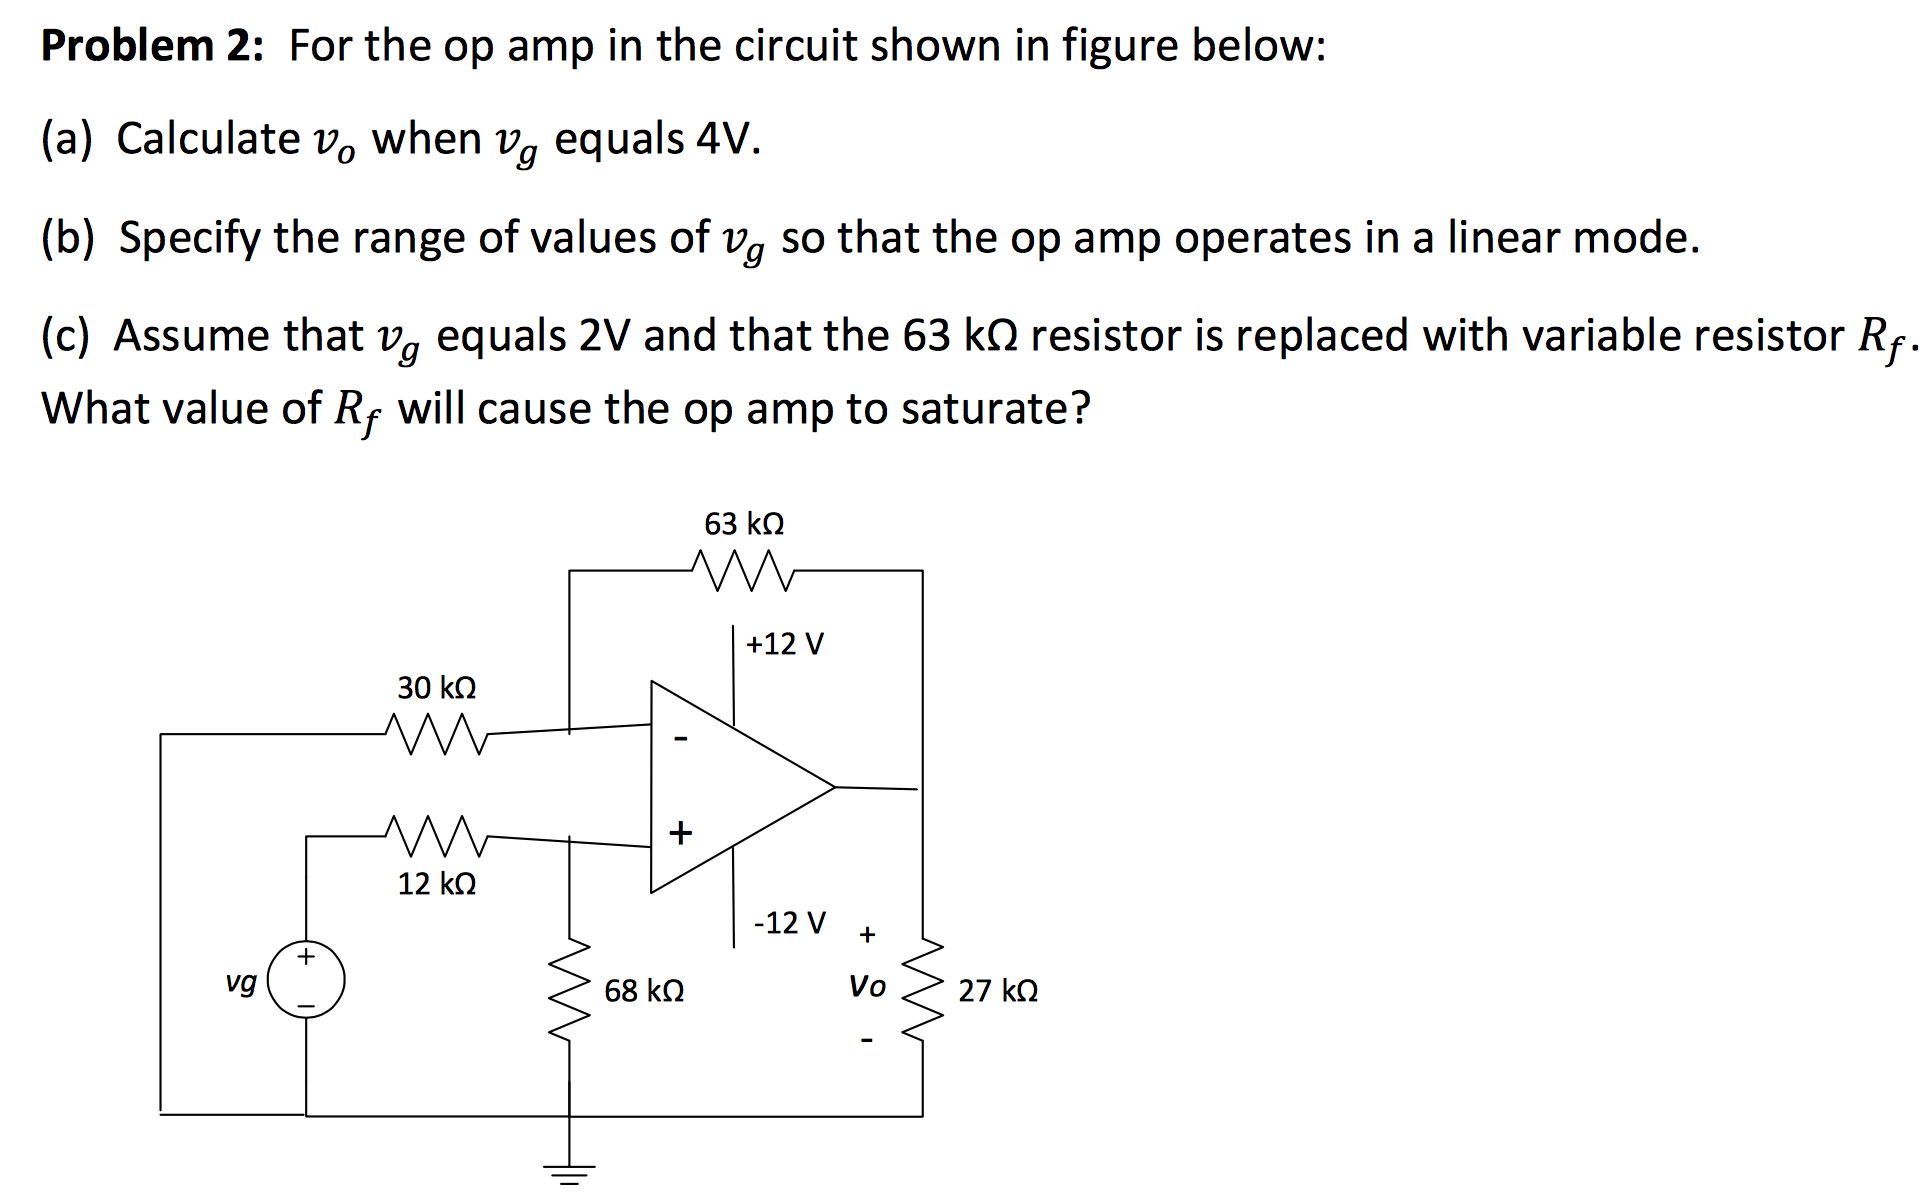 Problem 2: For the op amp in the circuit shown in